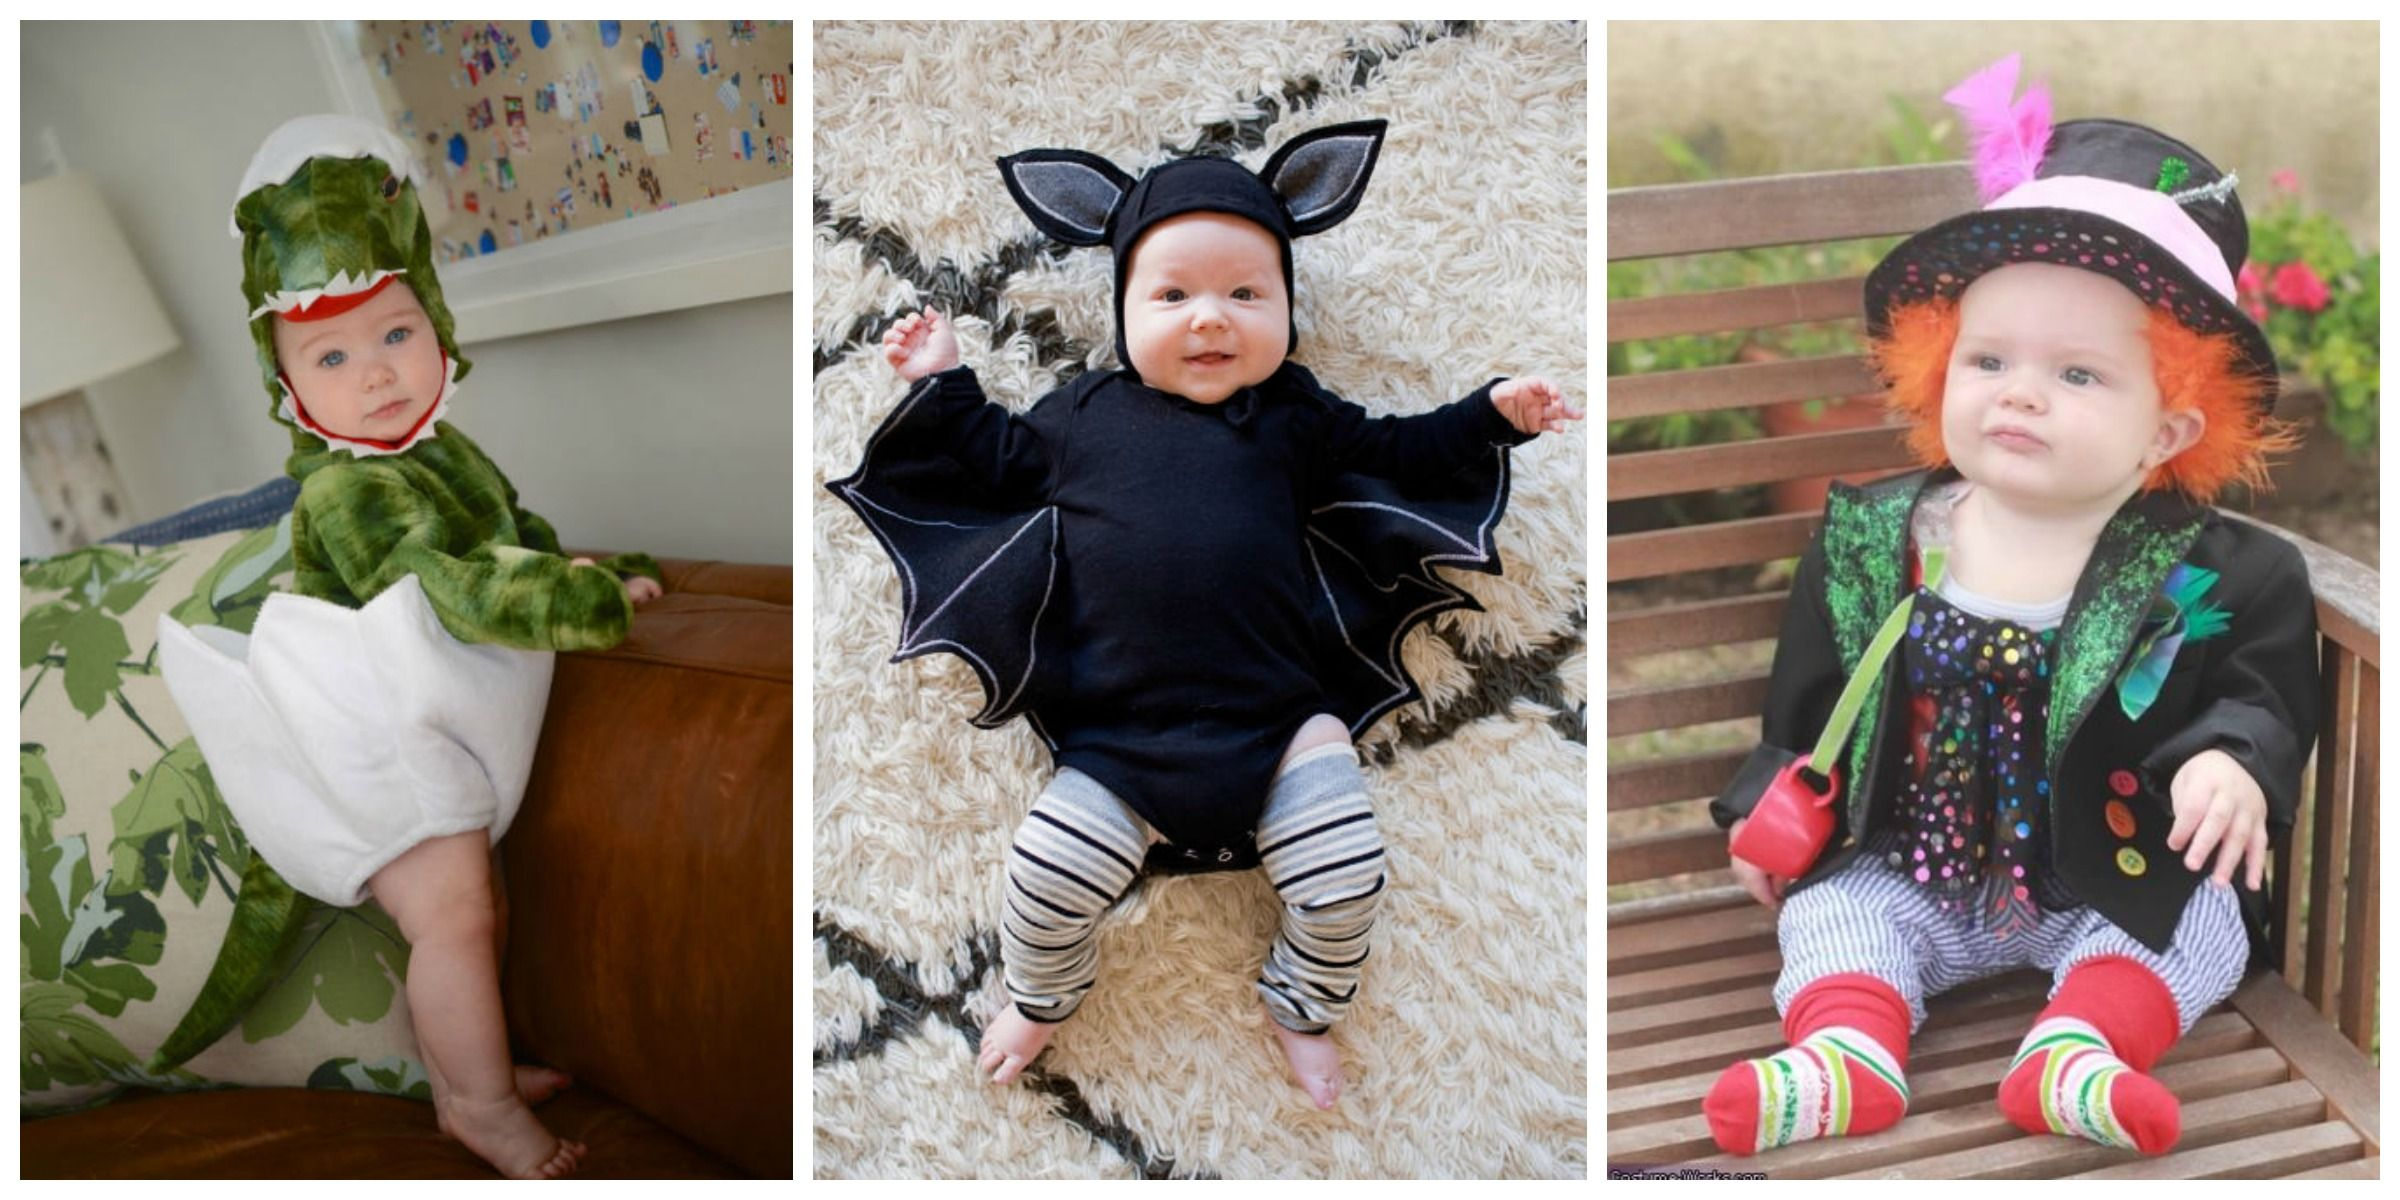 30 Cute Baby Halloween Costumes 2017 Best Ideas for Boy and Girl